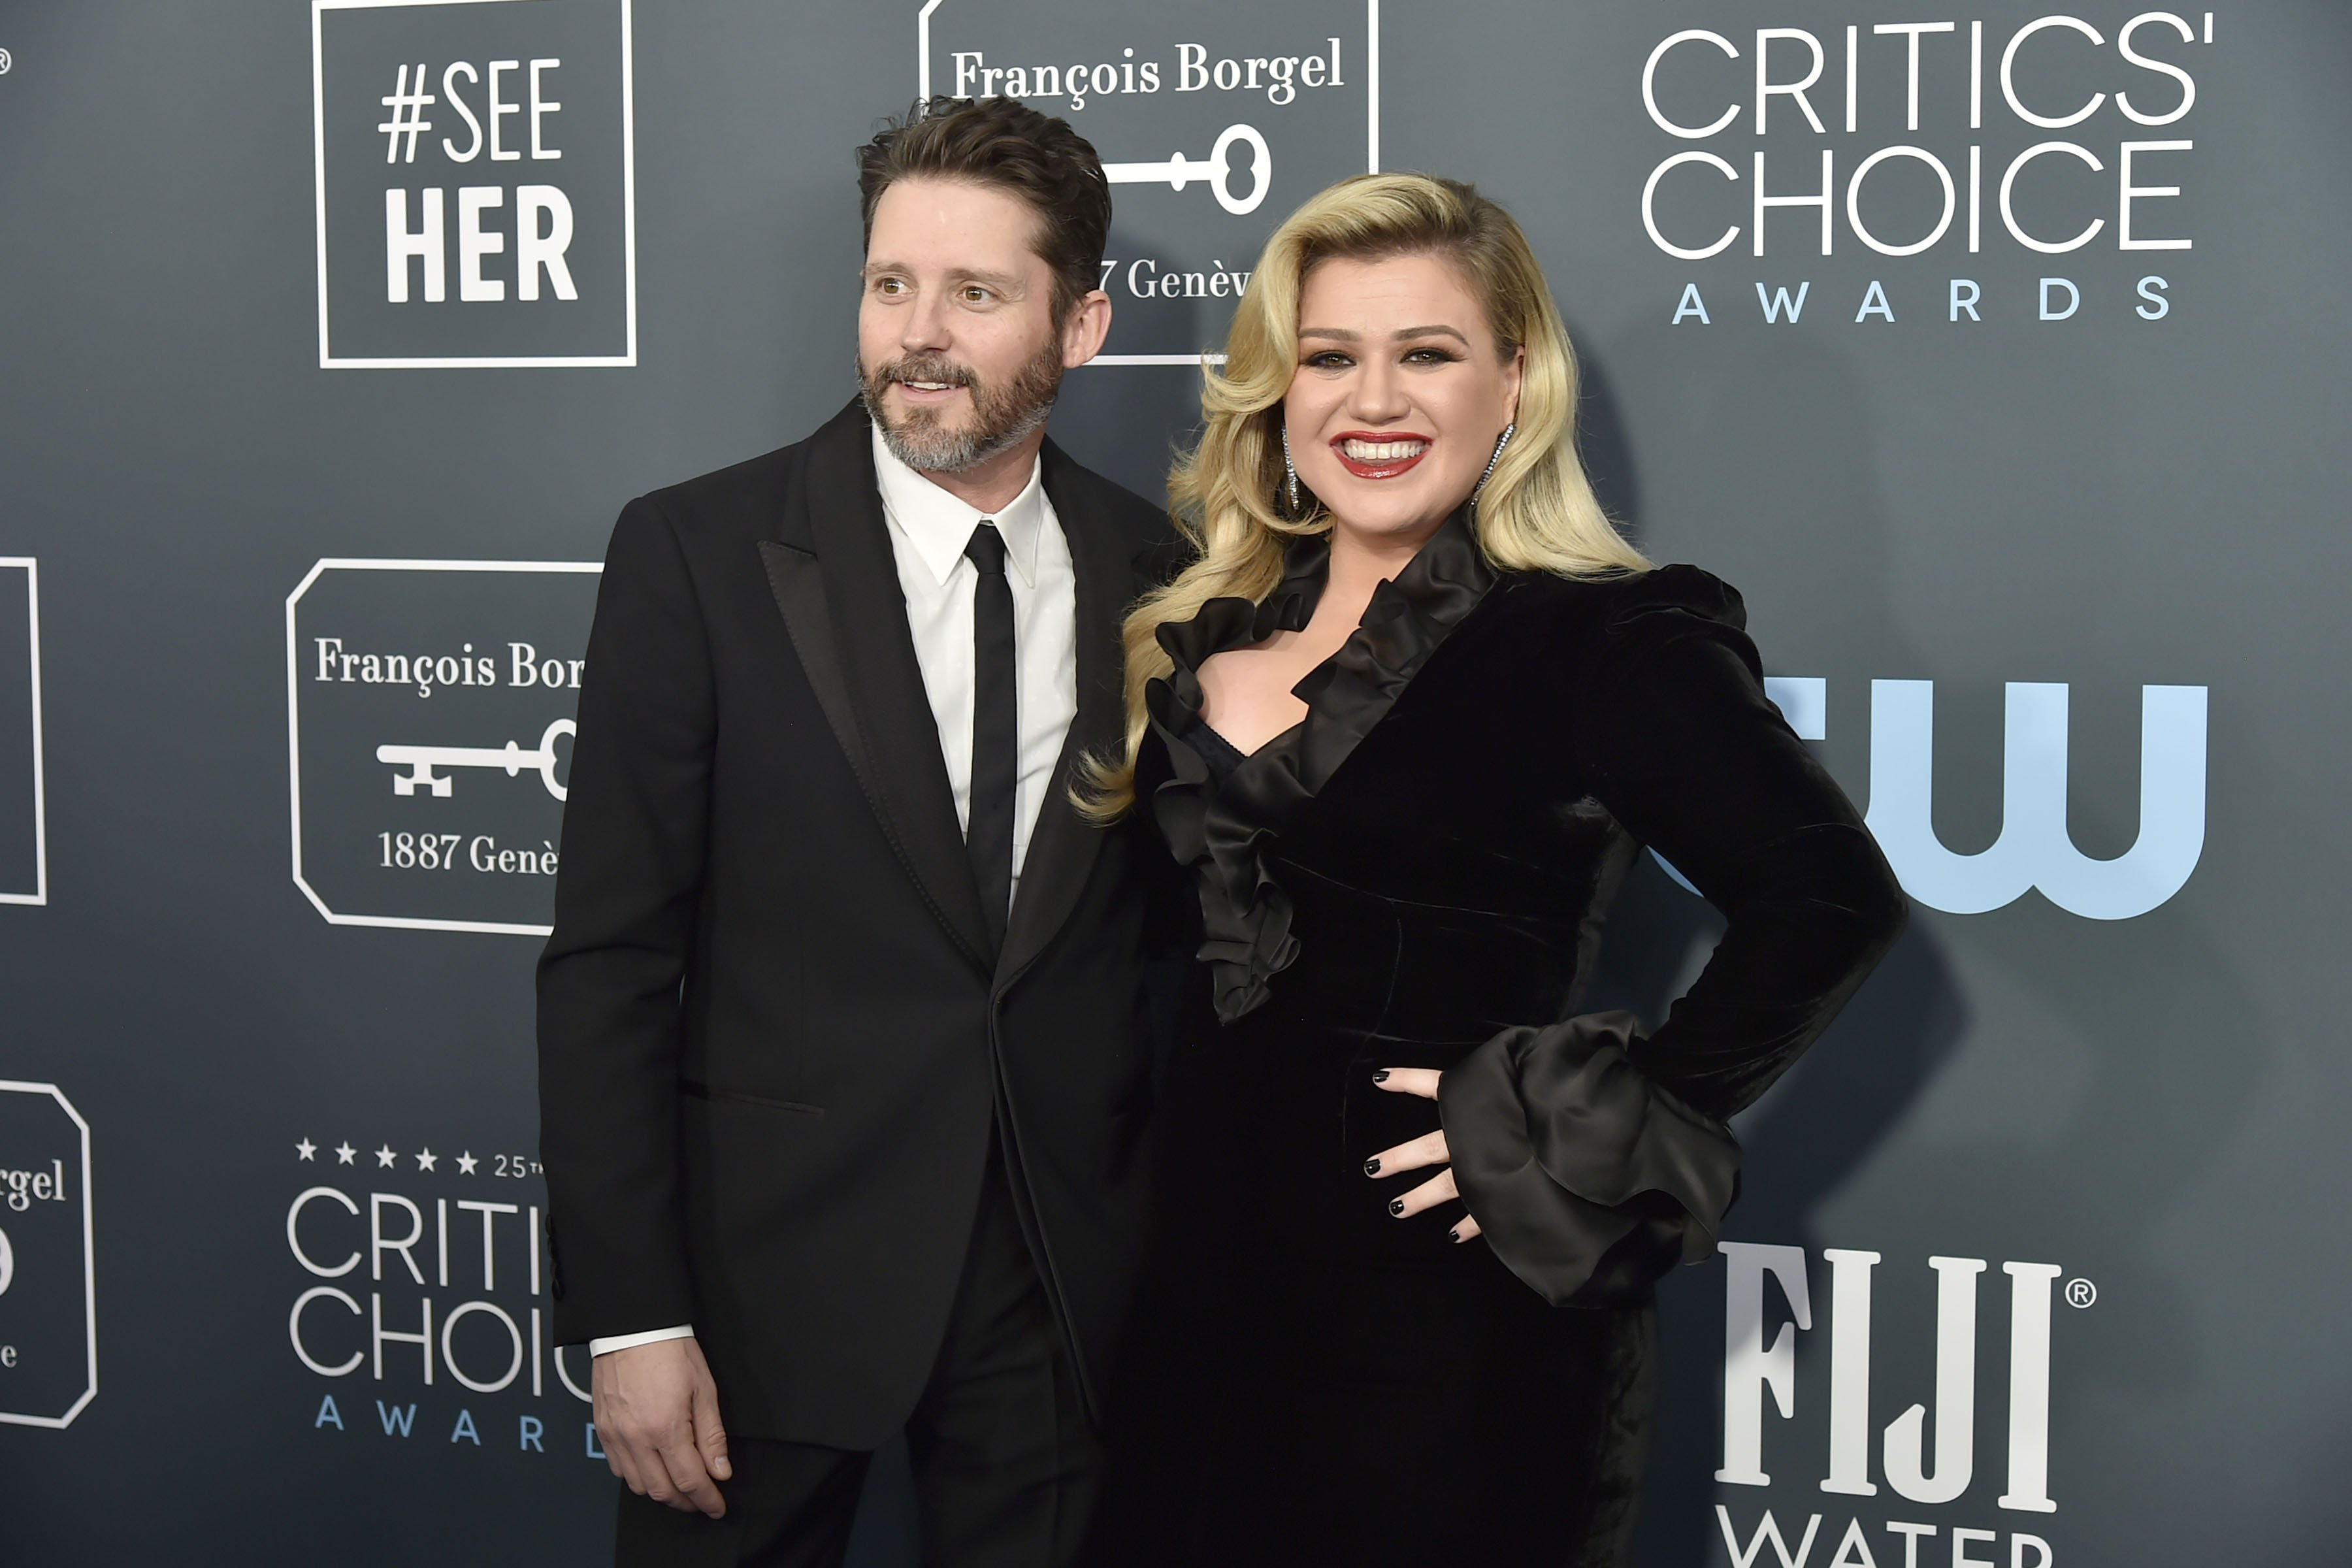 Brandon Blackstock and Kelly Clarkson attend the Critics' Choice Awards in Santa Monica, California on January 12, 2020 | Photo: Getty Images